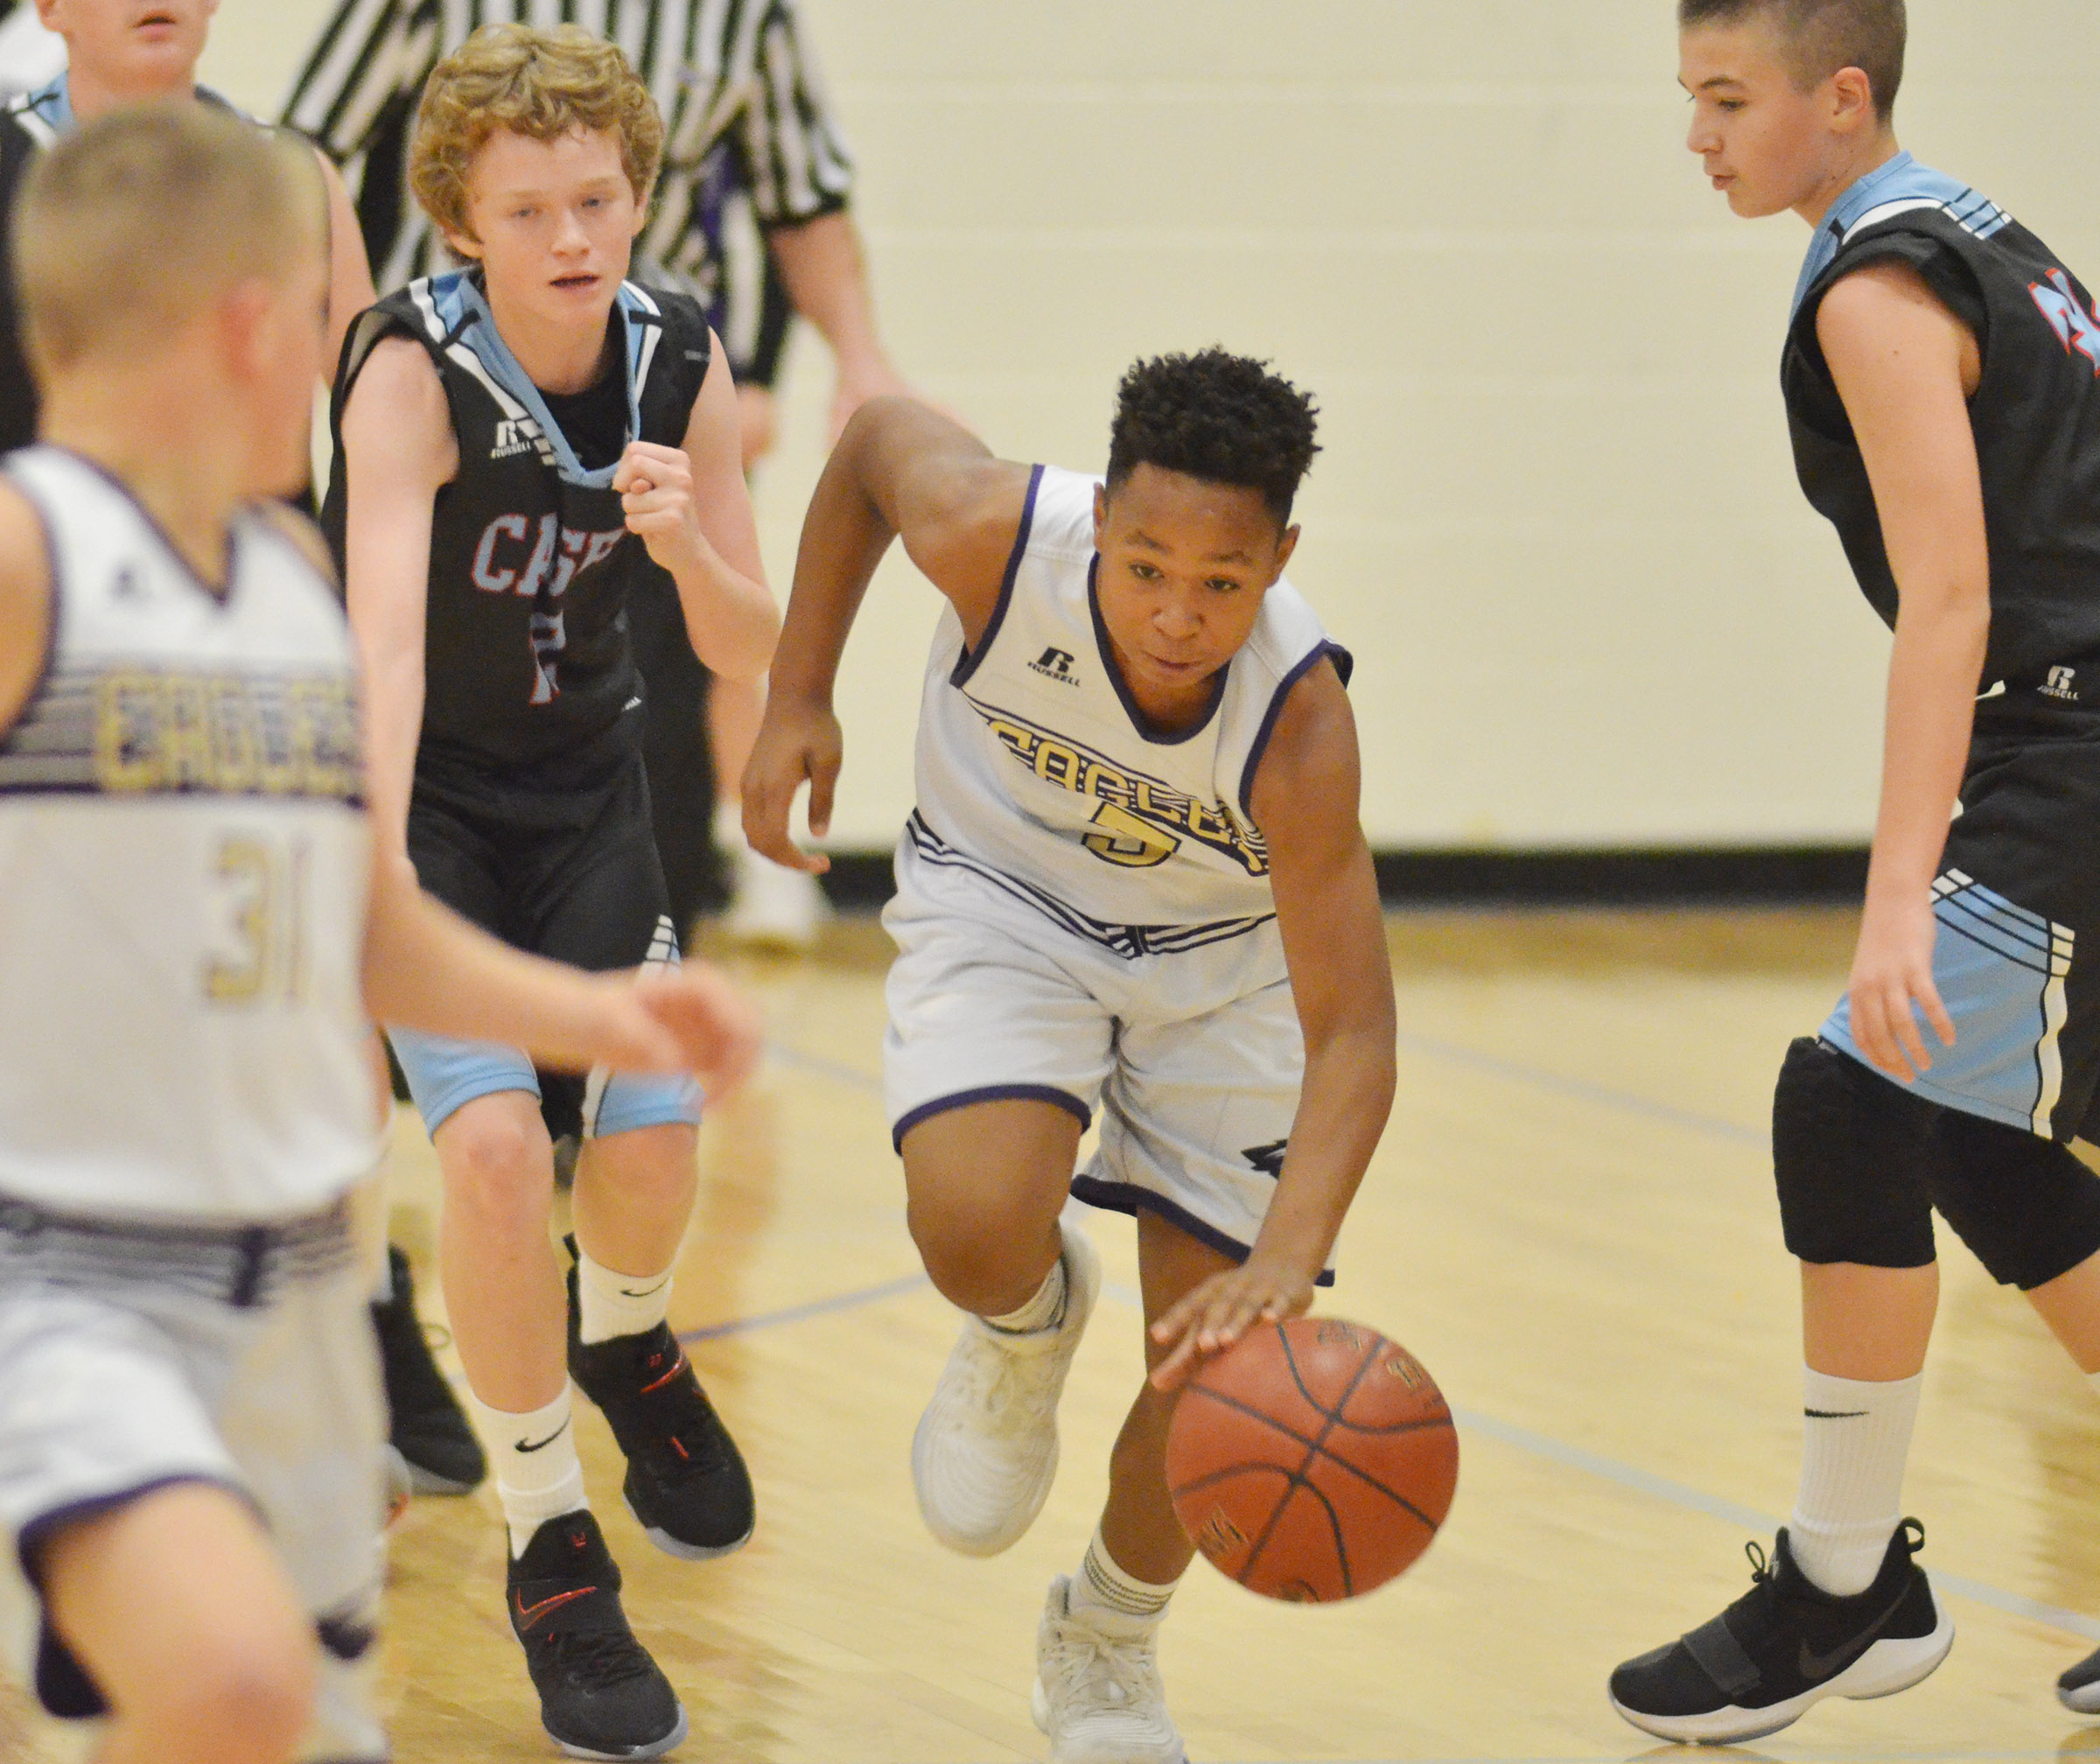 CMS seventh-grader Deondre Weathers dribbles.